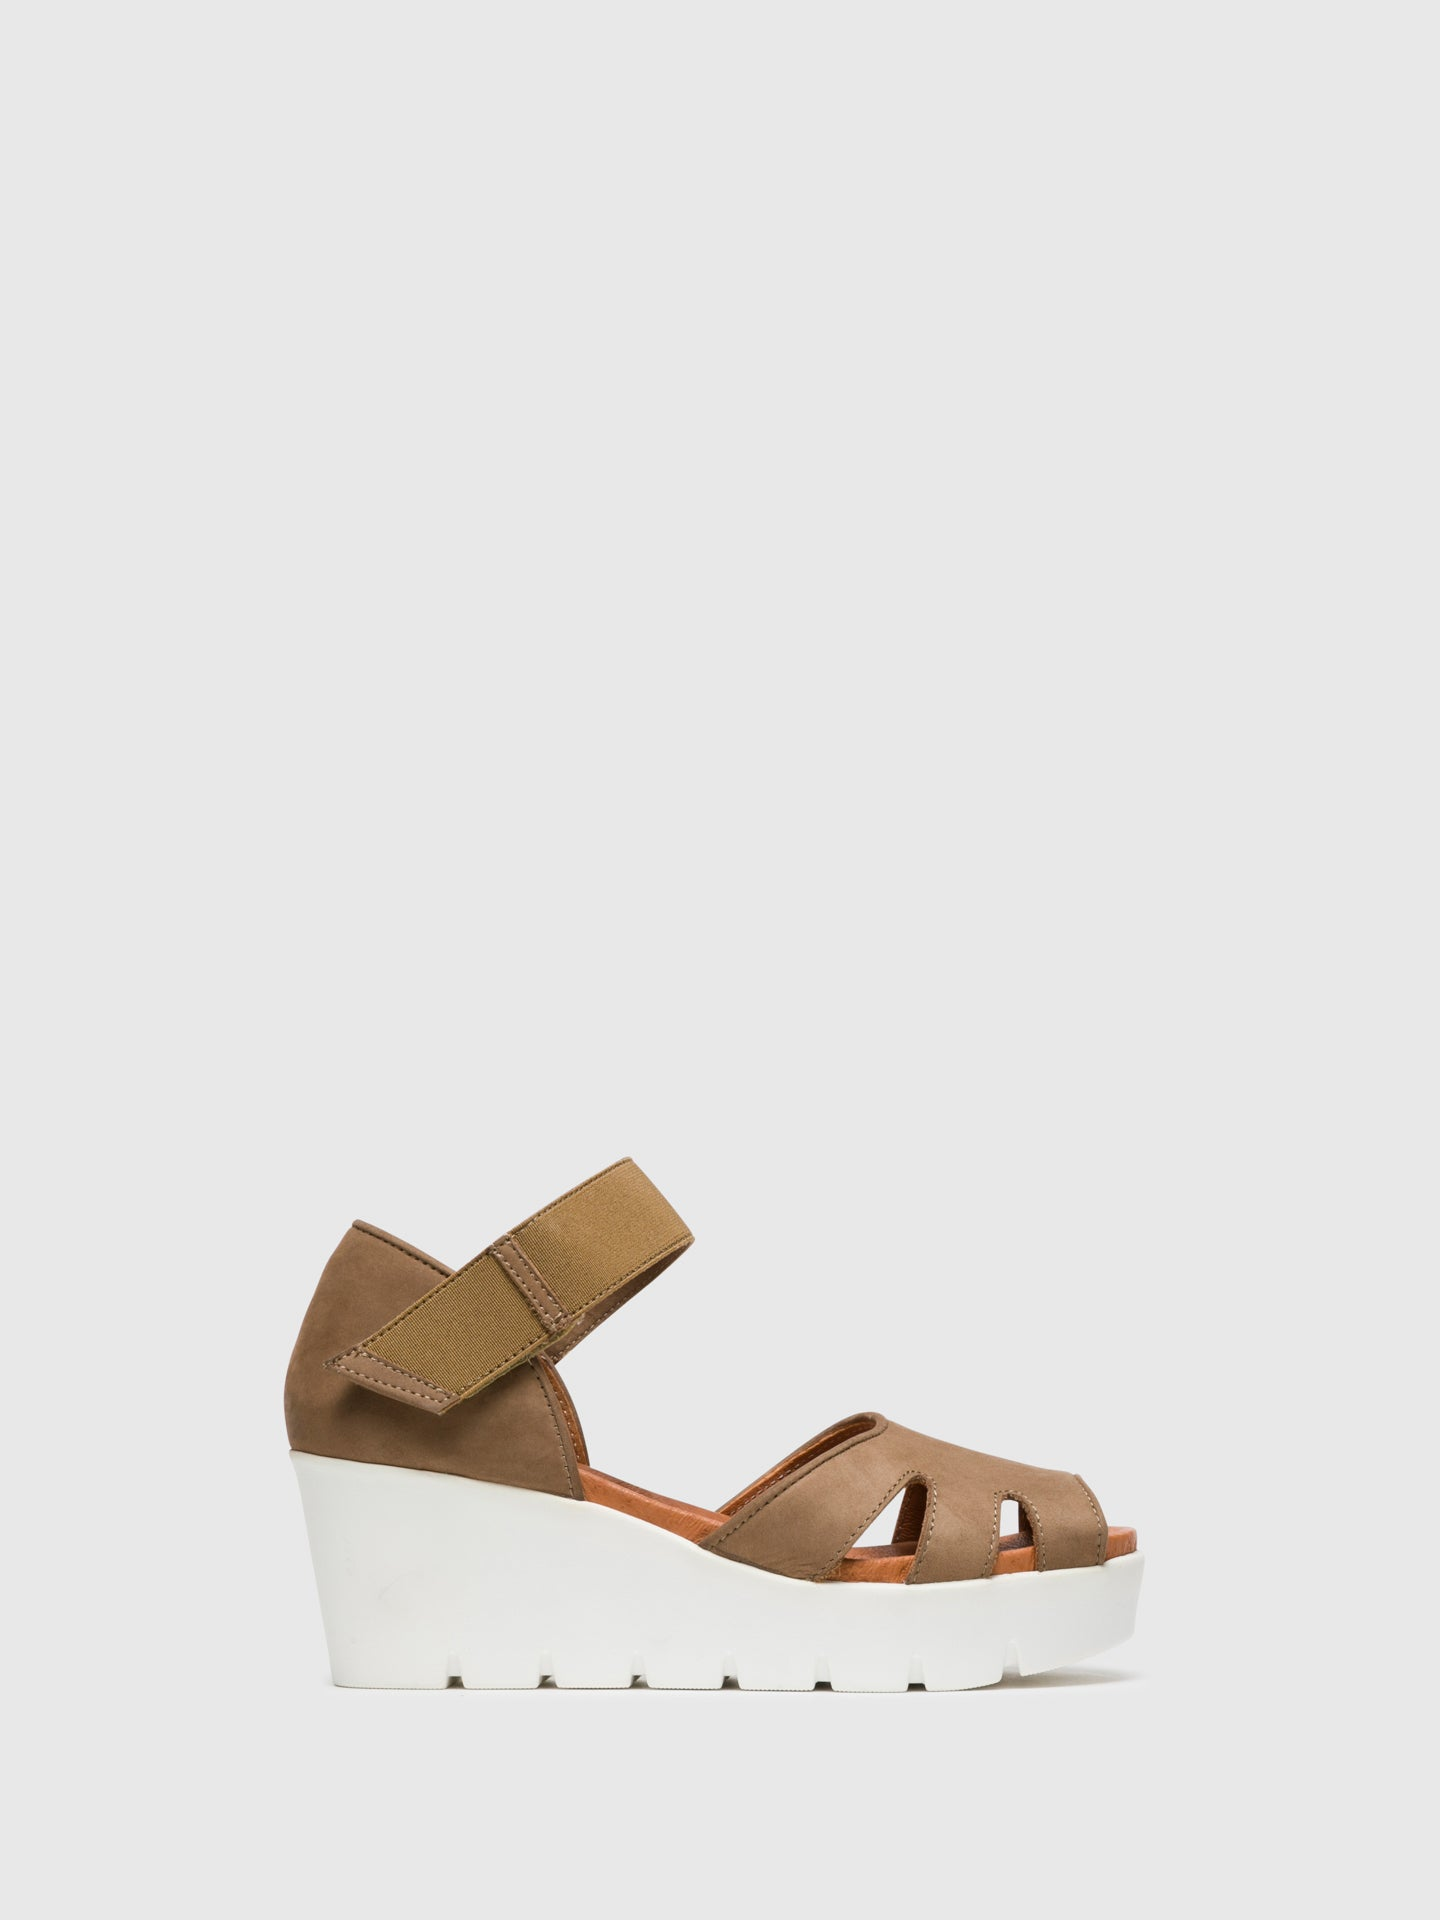 Bos&Co Beige Velcro Sandals